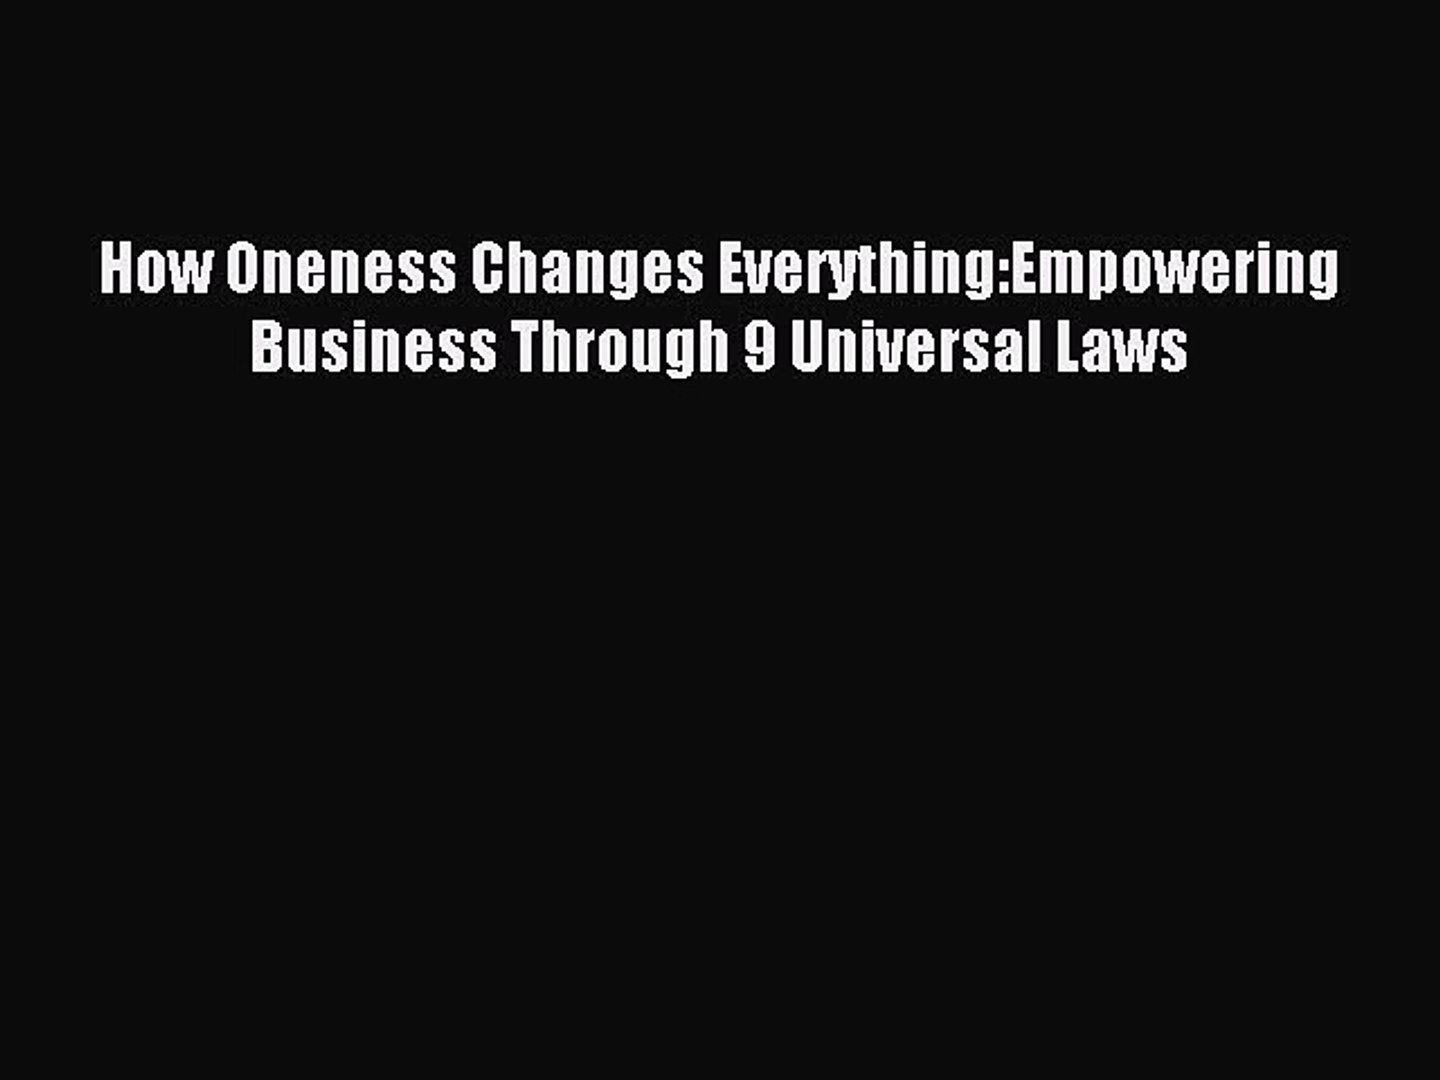 Read How Oneness Changes Everything:Empowering Business Through 9 Universal Laws Ebook Free